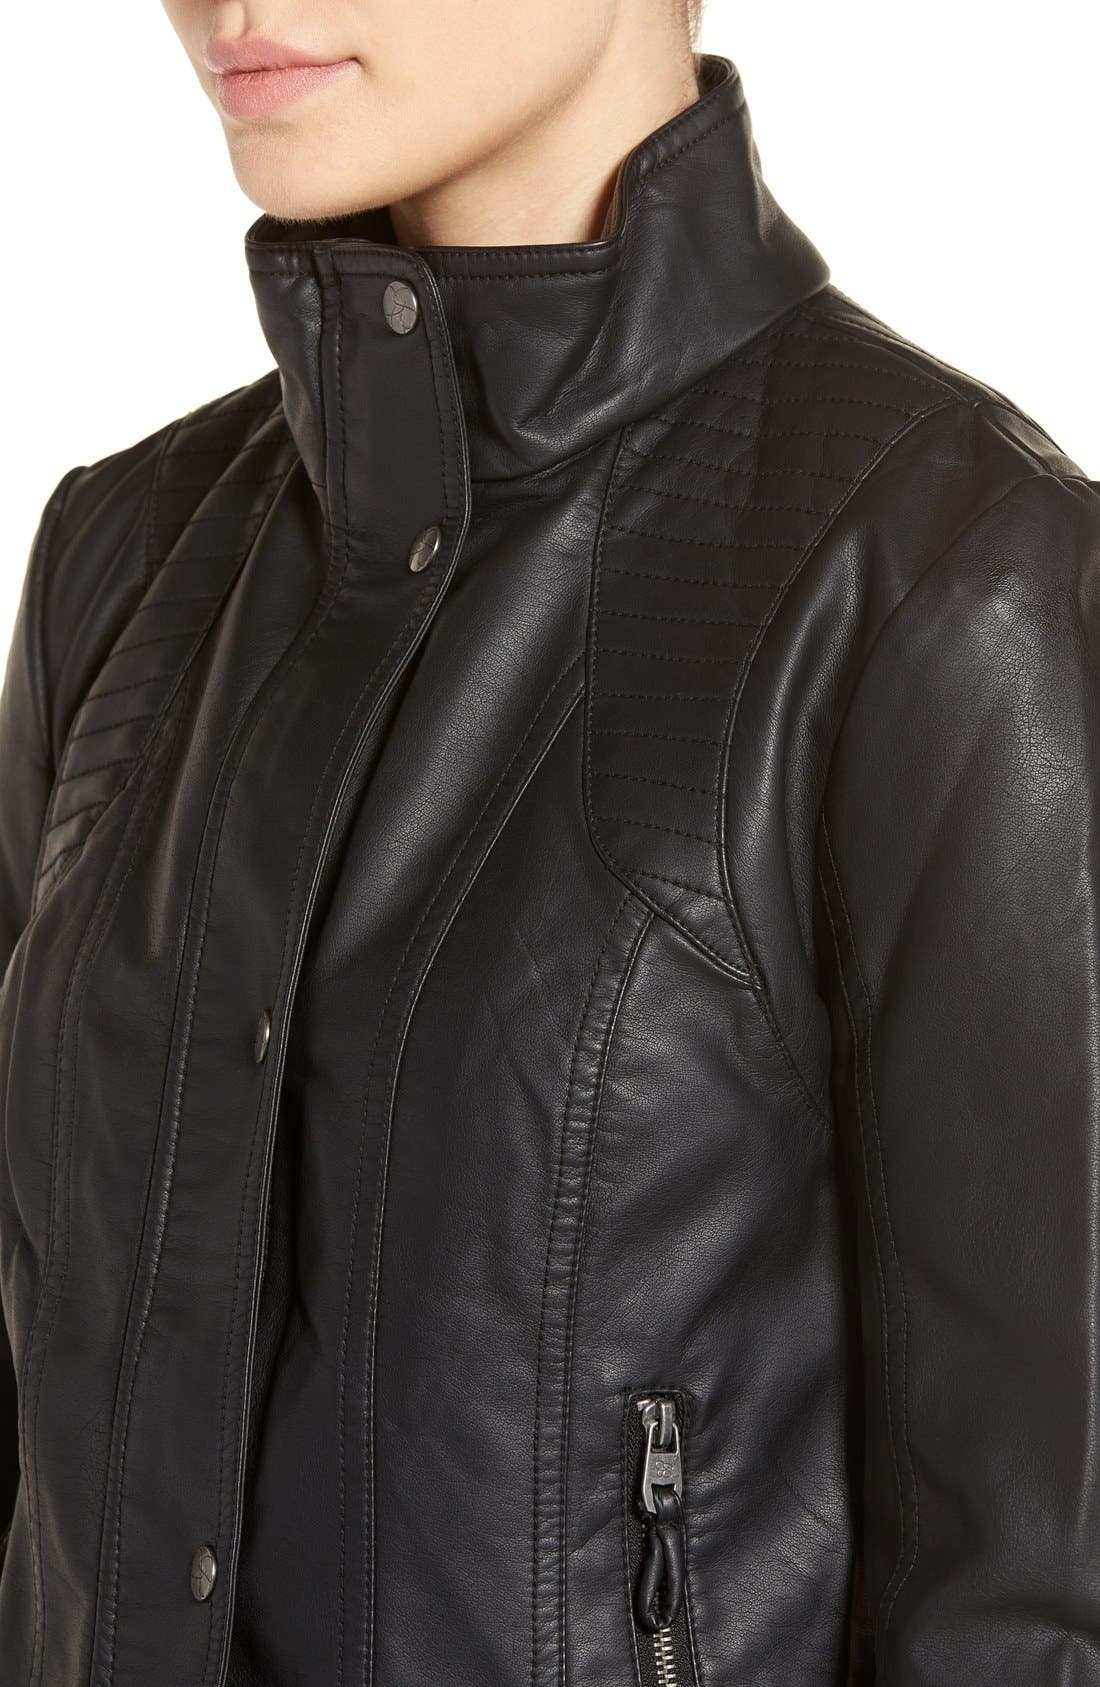 Quilted Faux Leather Jacket,                             Alternate thumbnail 4, color,                             001